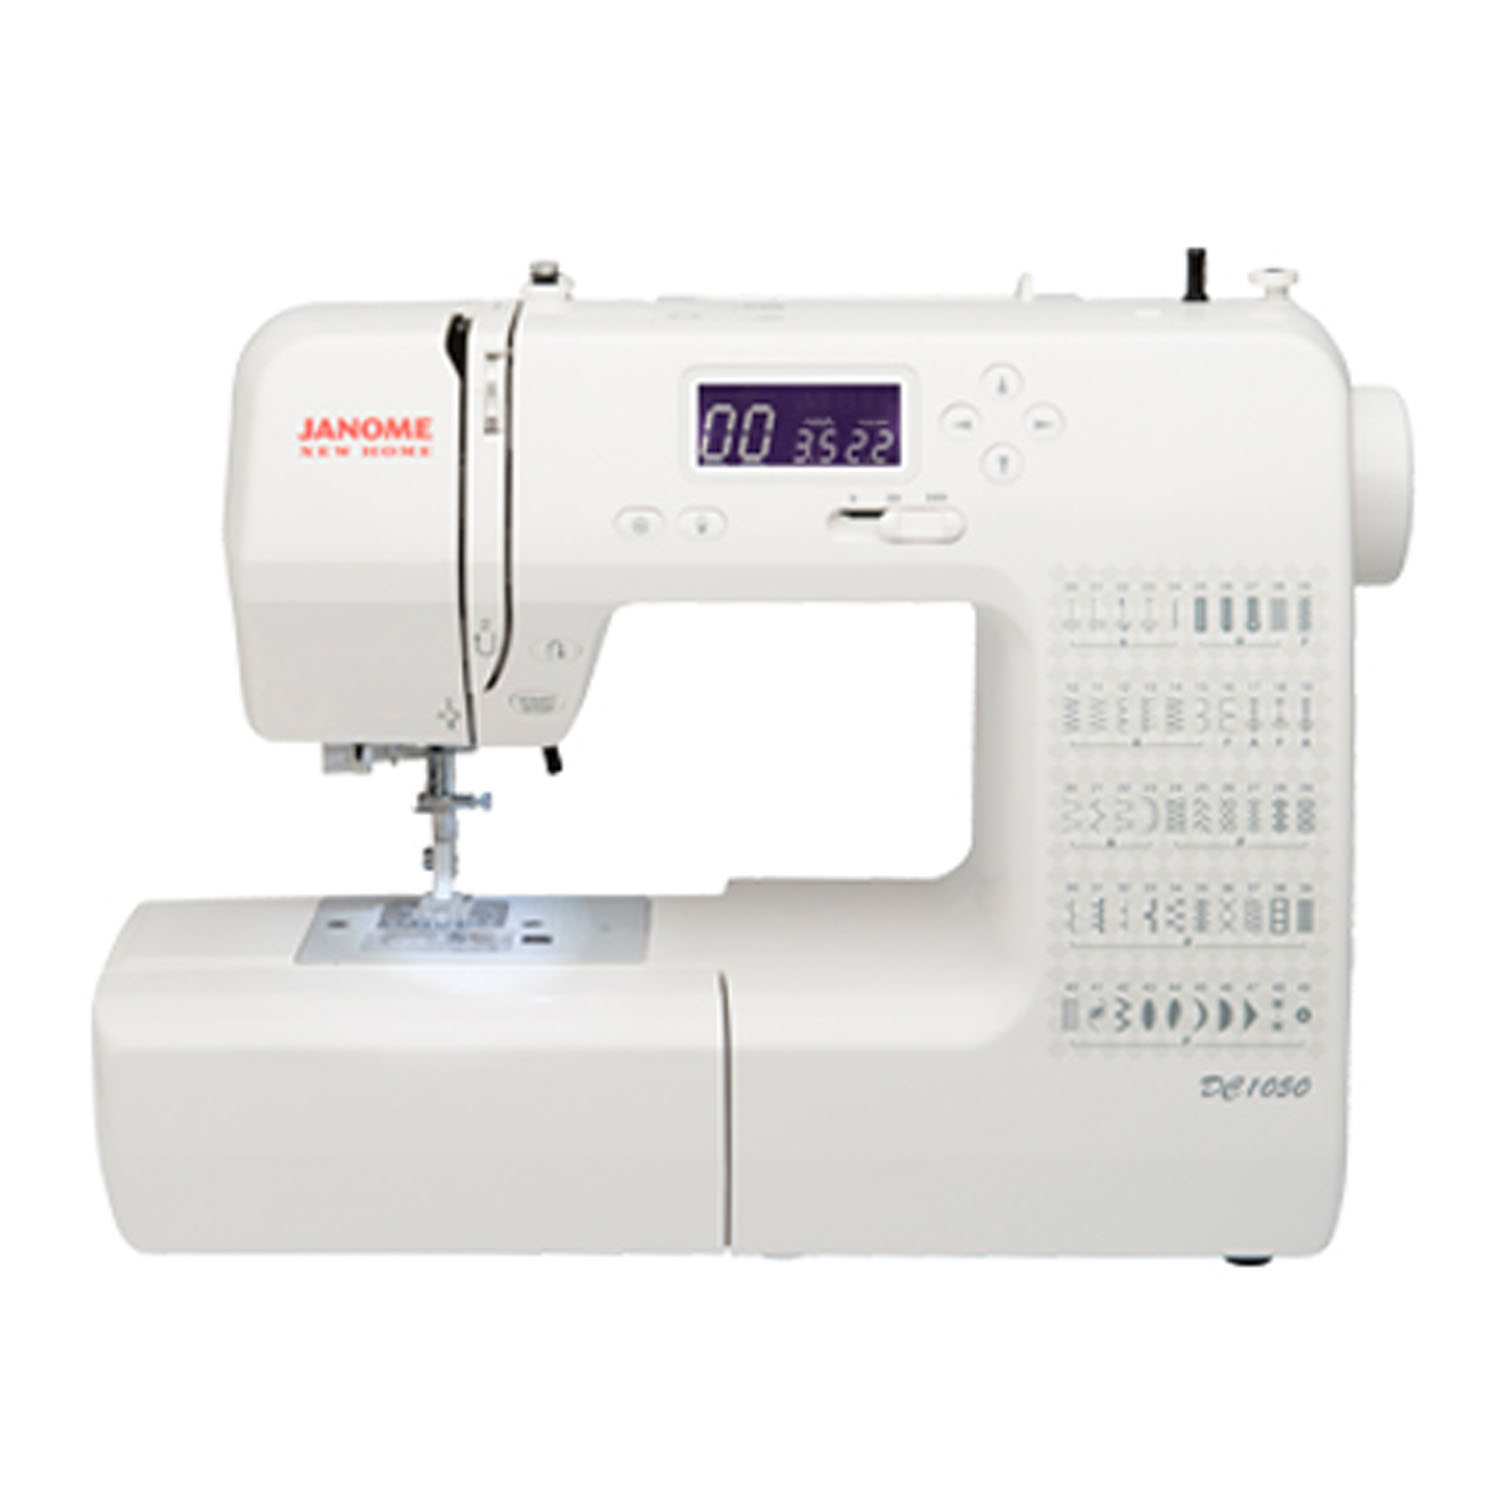 Janome DC1050 Computerised Sewing Machine